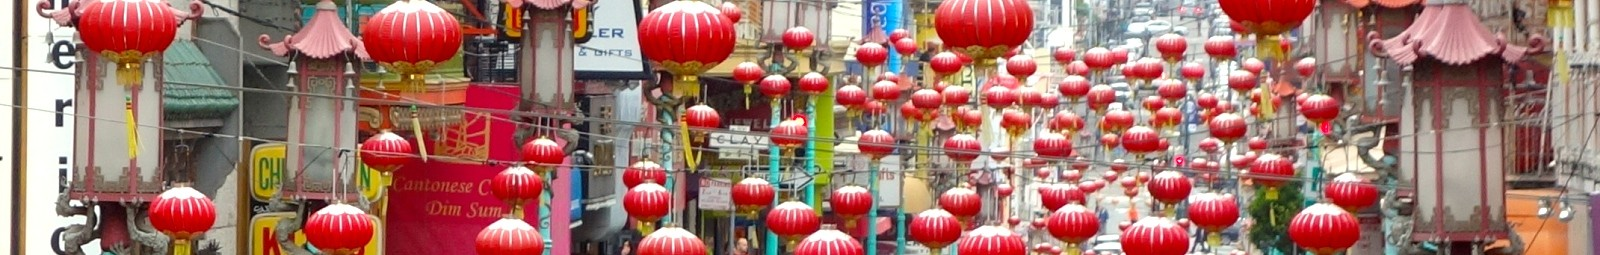 Chinatown Grant Ave